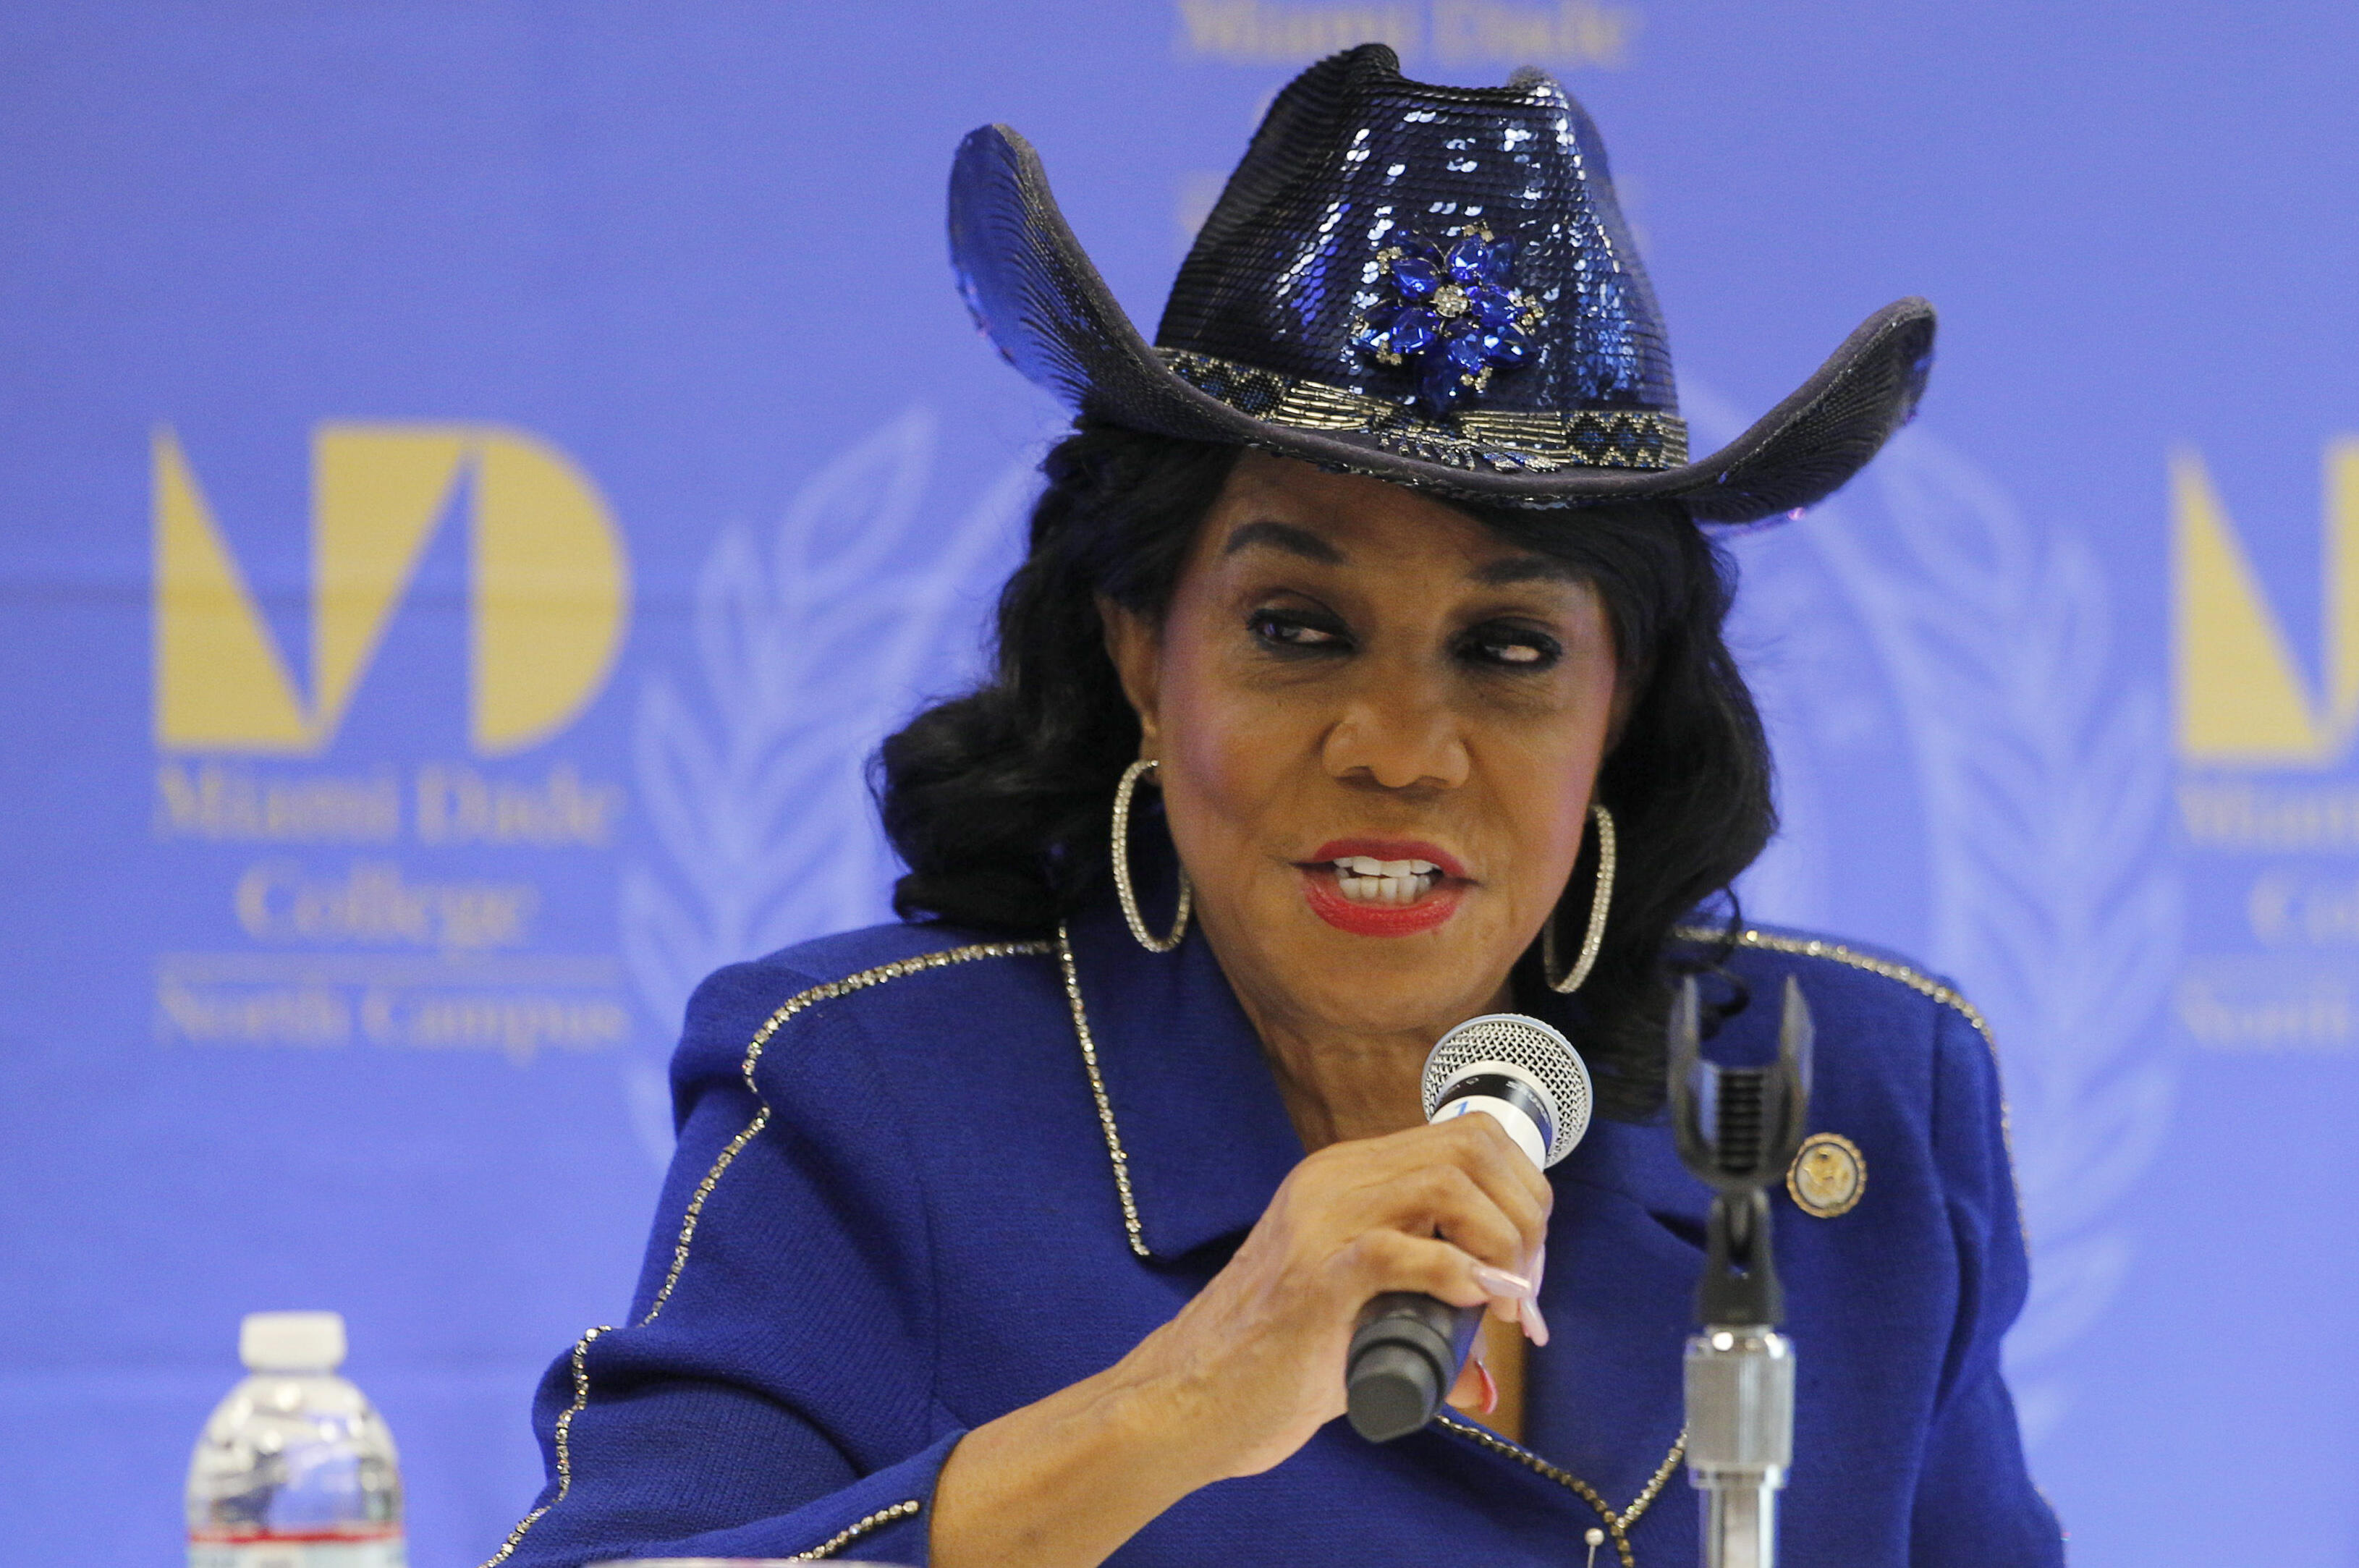 MIAMI, FL - OCTOBER 19: Rep. Frederica Wilson (D-FL) speaks at a Congressional field hearing on nursing home preparedness and disaster response October 19, 2017, in Miami, Florida. The hearing comes in the wake of fourteen patient deaths at the Rehabilitation Center of Hollywood Hills, Florida, which lost power after Hurricane Irma struck Florida. The nursing home deaths remain under police investigation. (Photo by Joe Skipper/Getty Images)